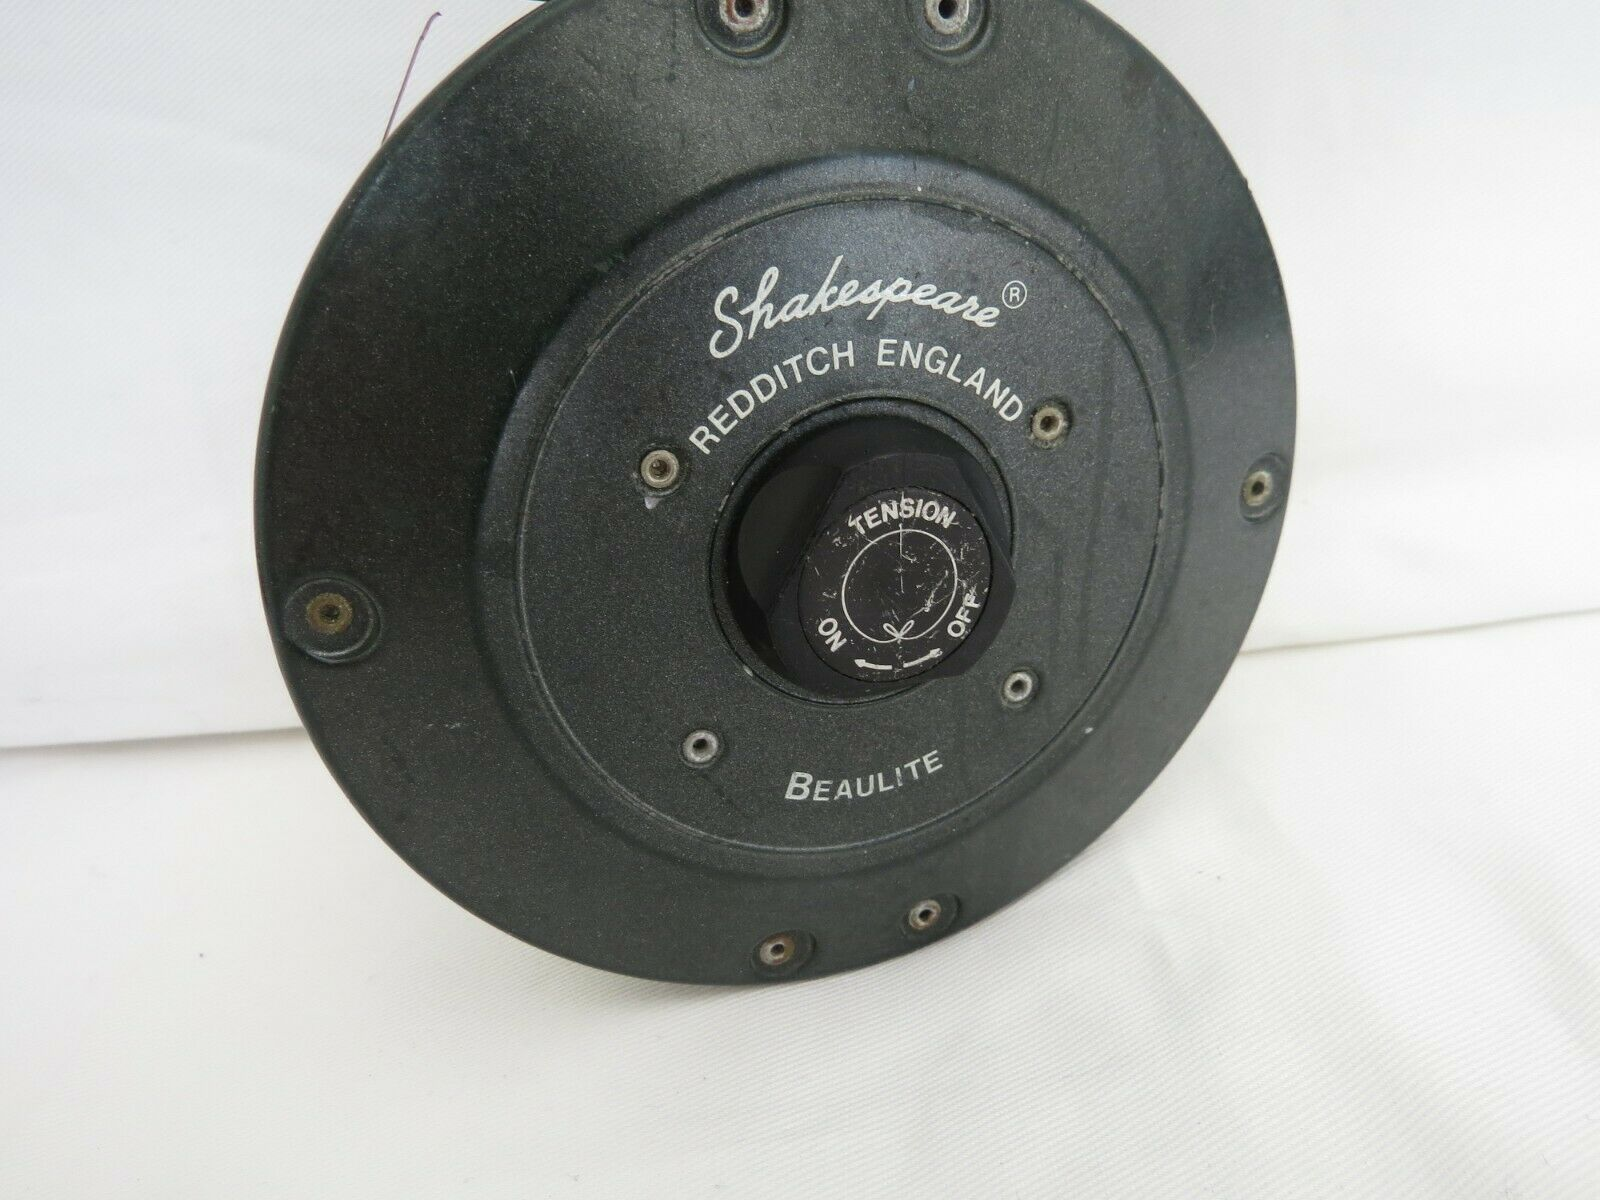 Vintage shakespeare youngs beaulite 1500 salmon fly fishing reel 4.25